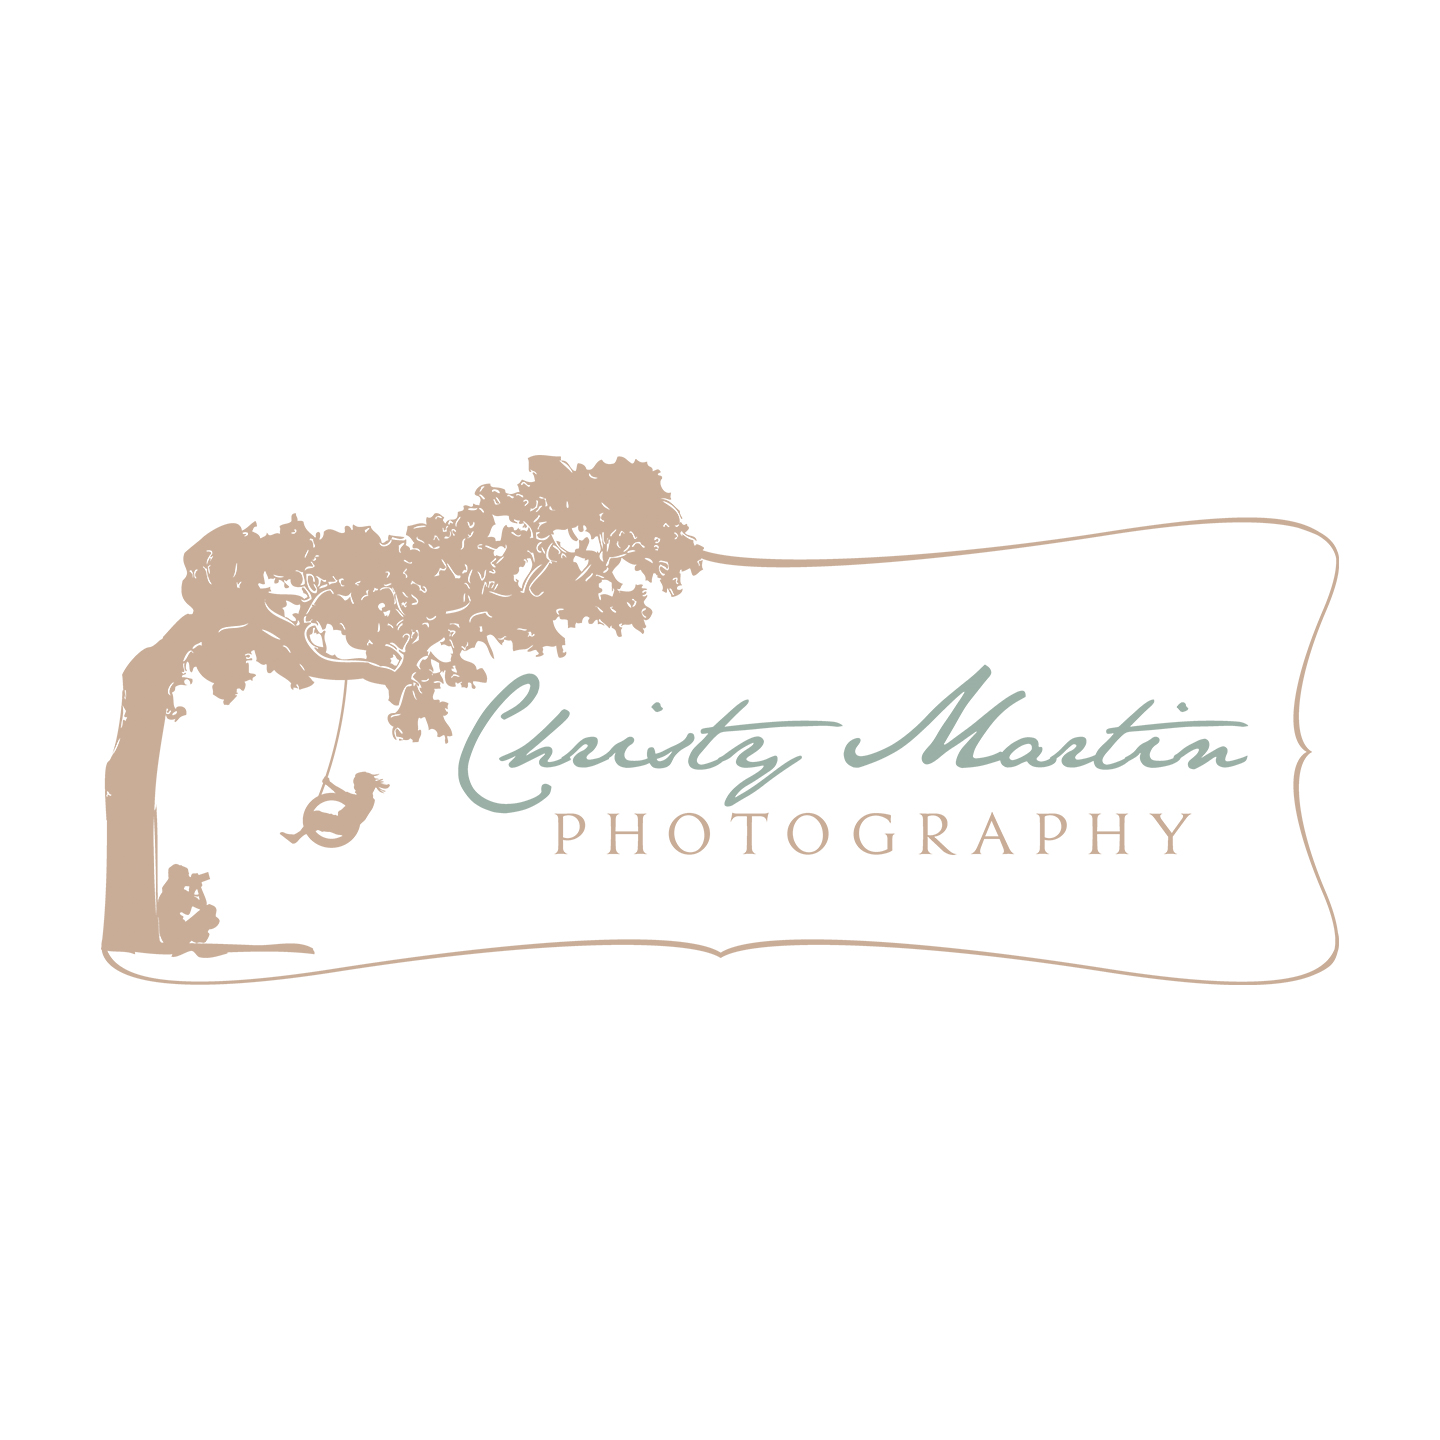 Christy Martin Photography